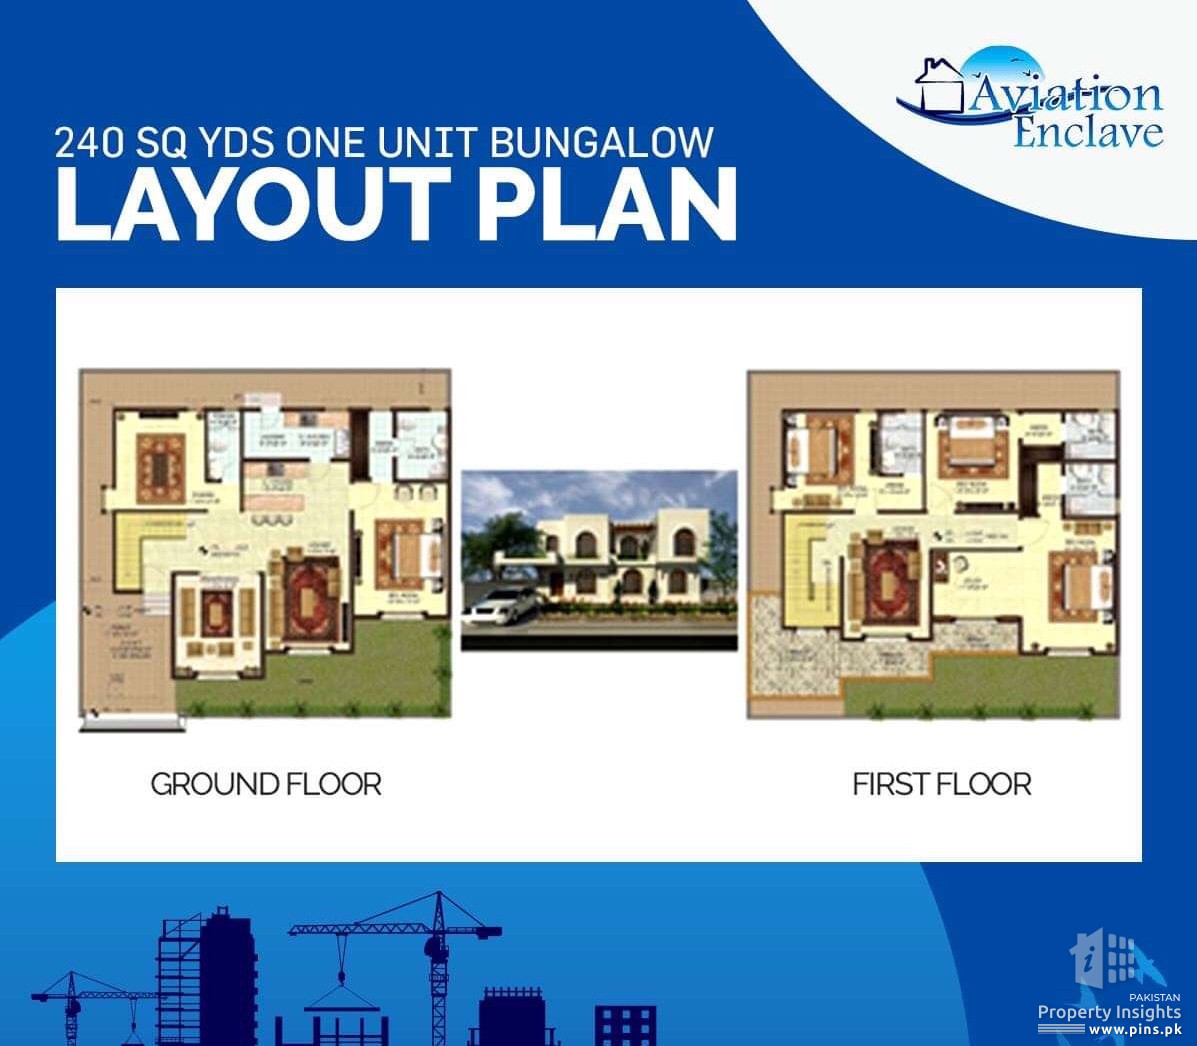 240 Sq yds Plot for sale in Aviation Enclave